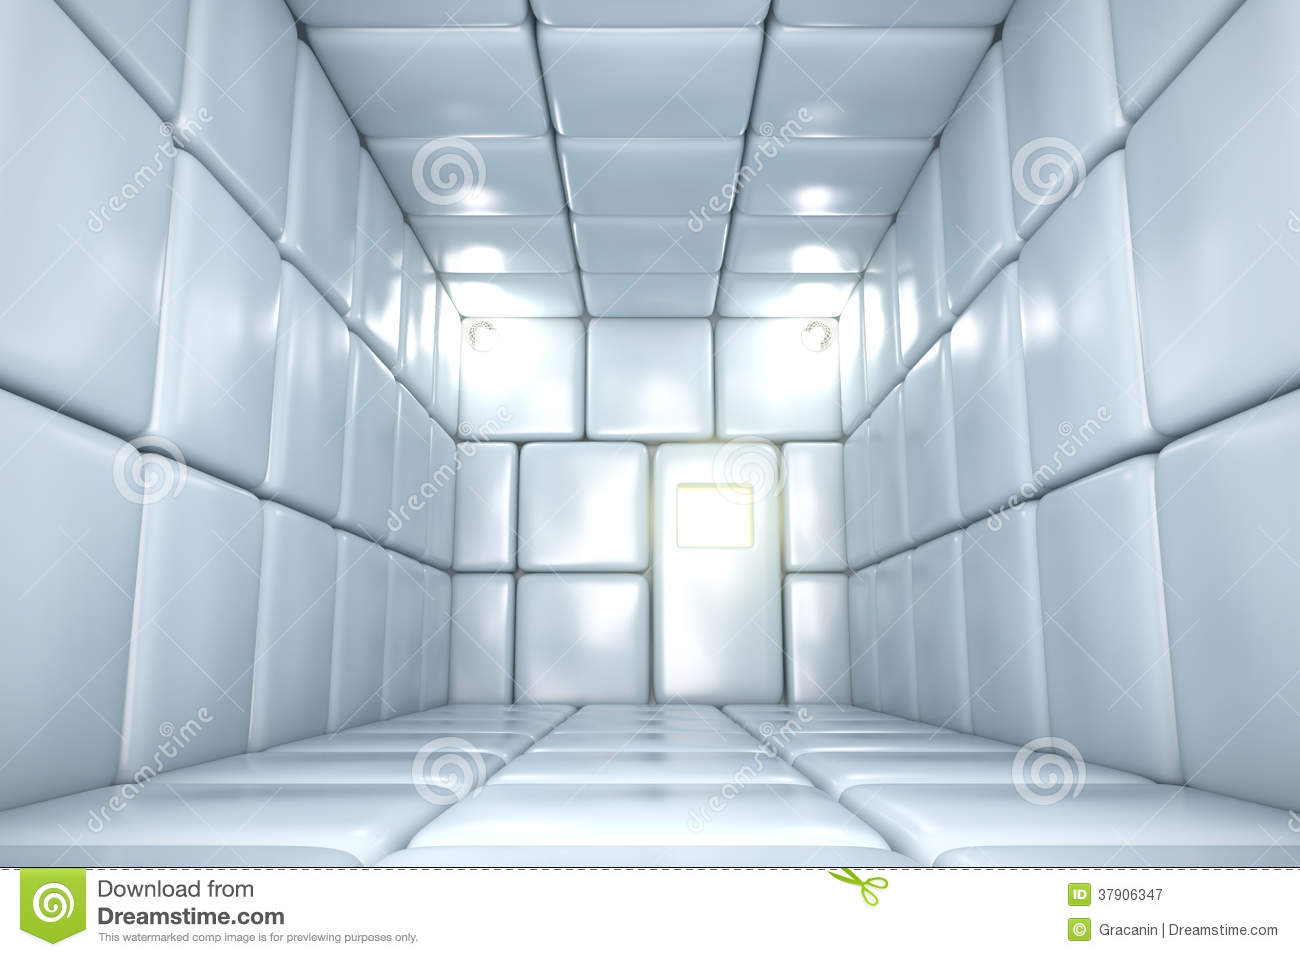 High Resolution Wallpaper   Padded Room 1300x957 px